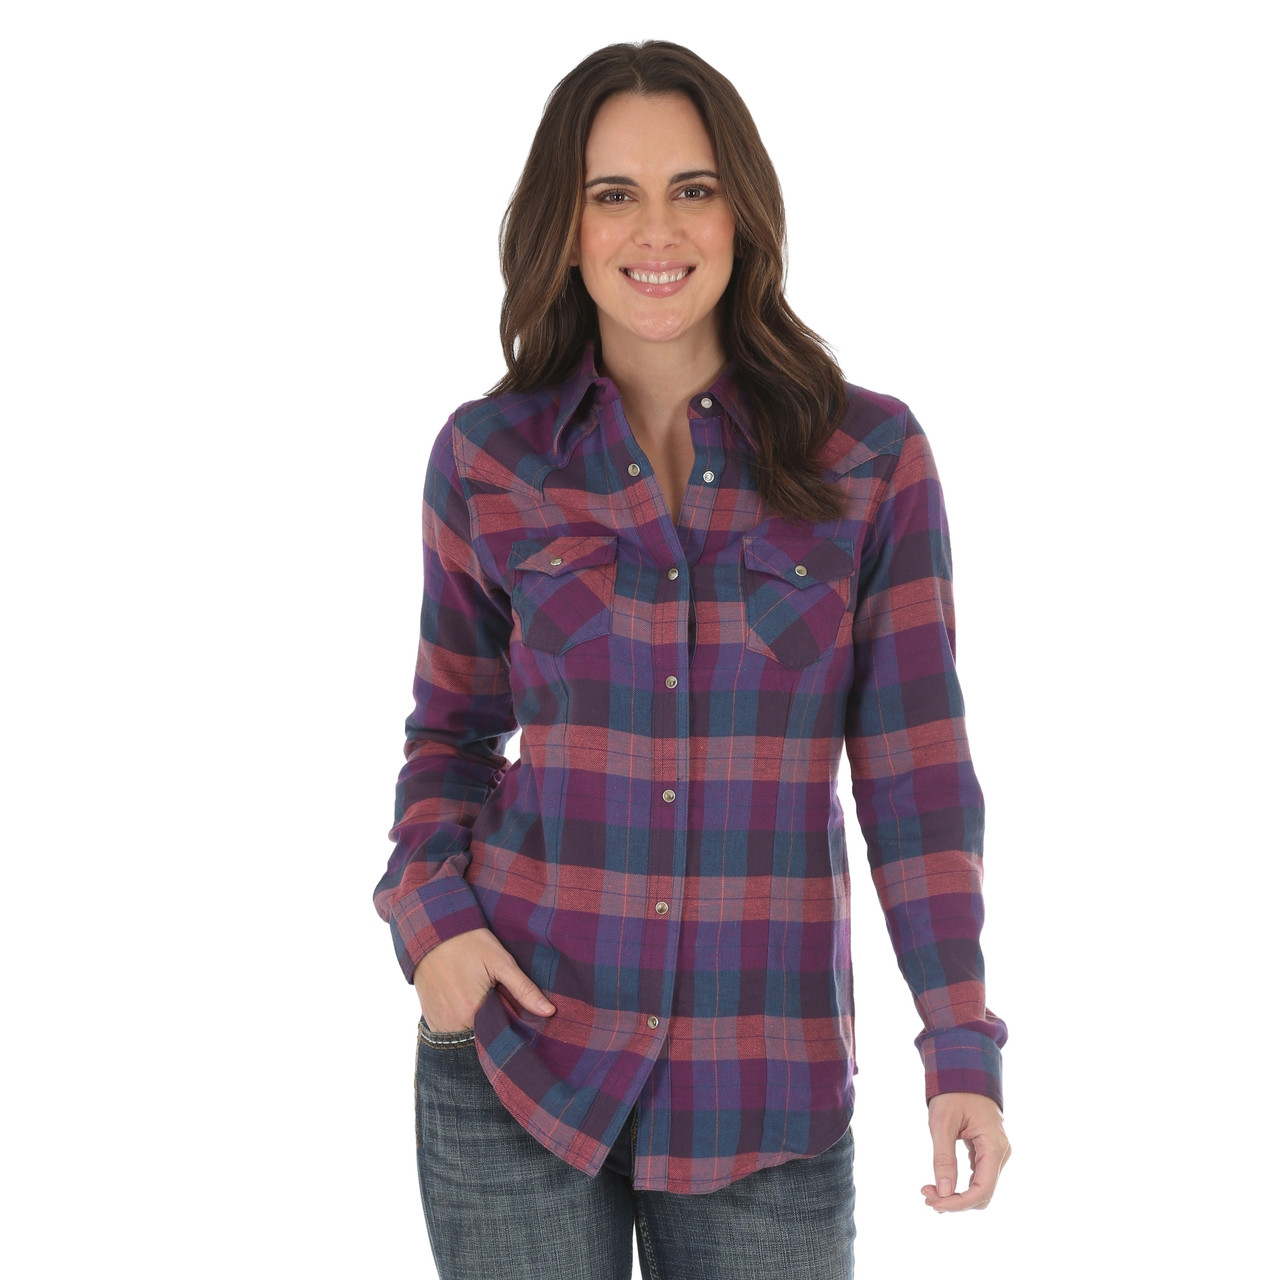 18942362 Women's Wrangler Purple and Teal Plaid Shirt - Herbert's Boots and ...